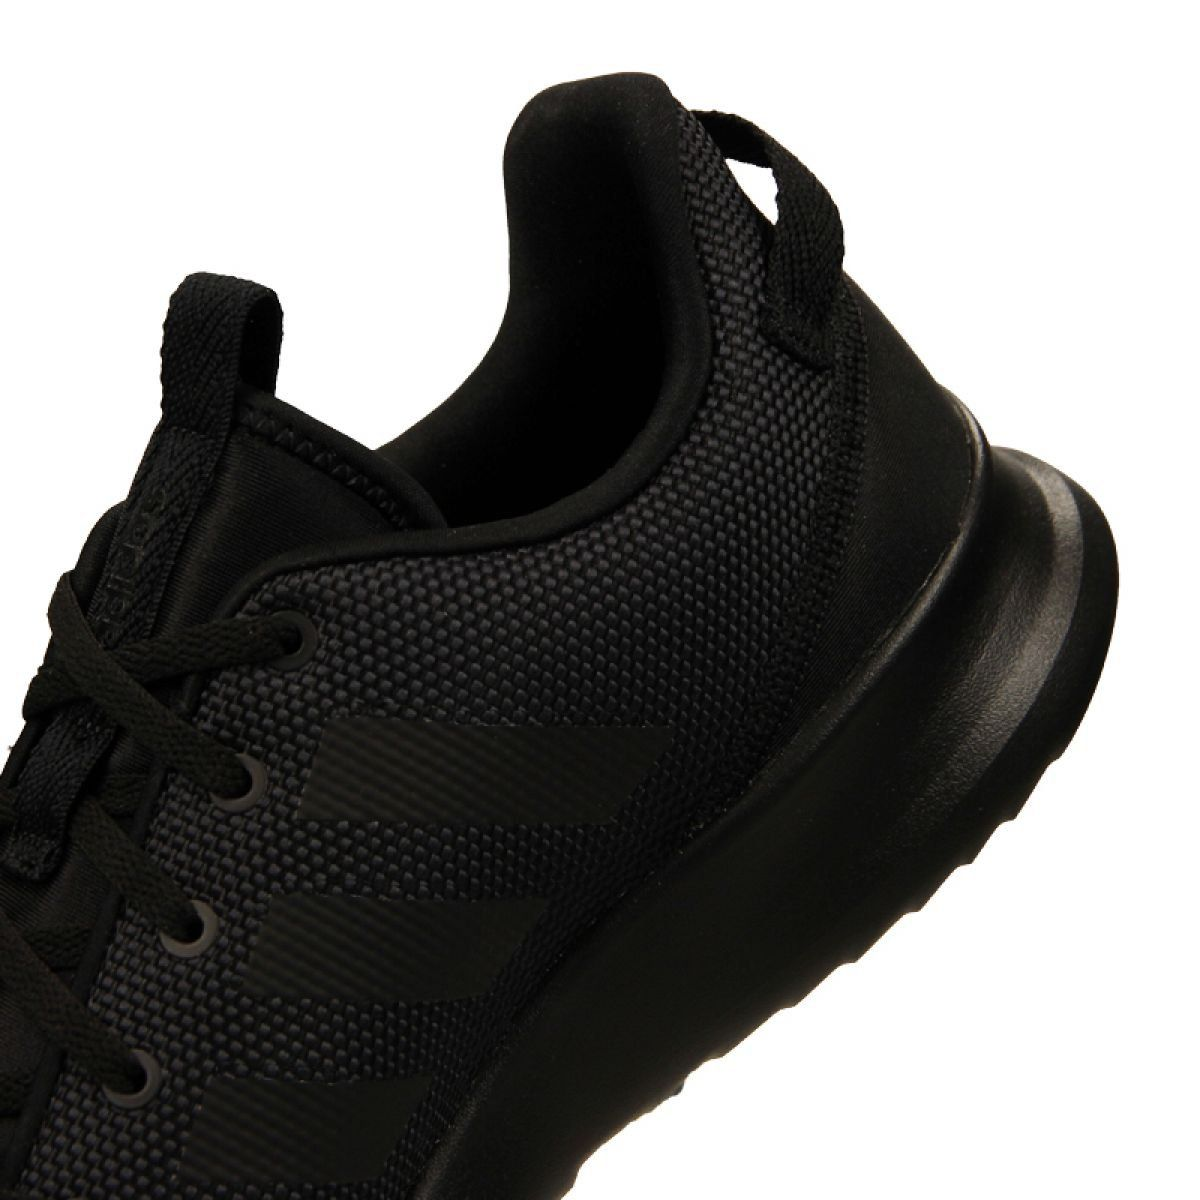 Adidas Cloudfoam Racer Tr M B43651 shoes black | Black shoes